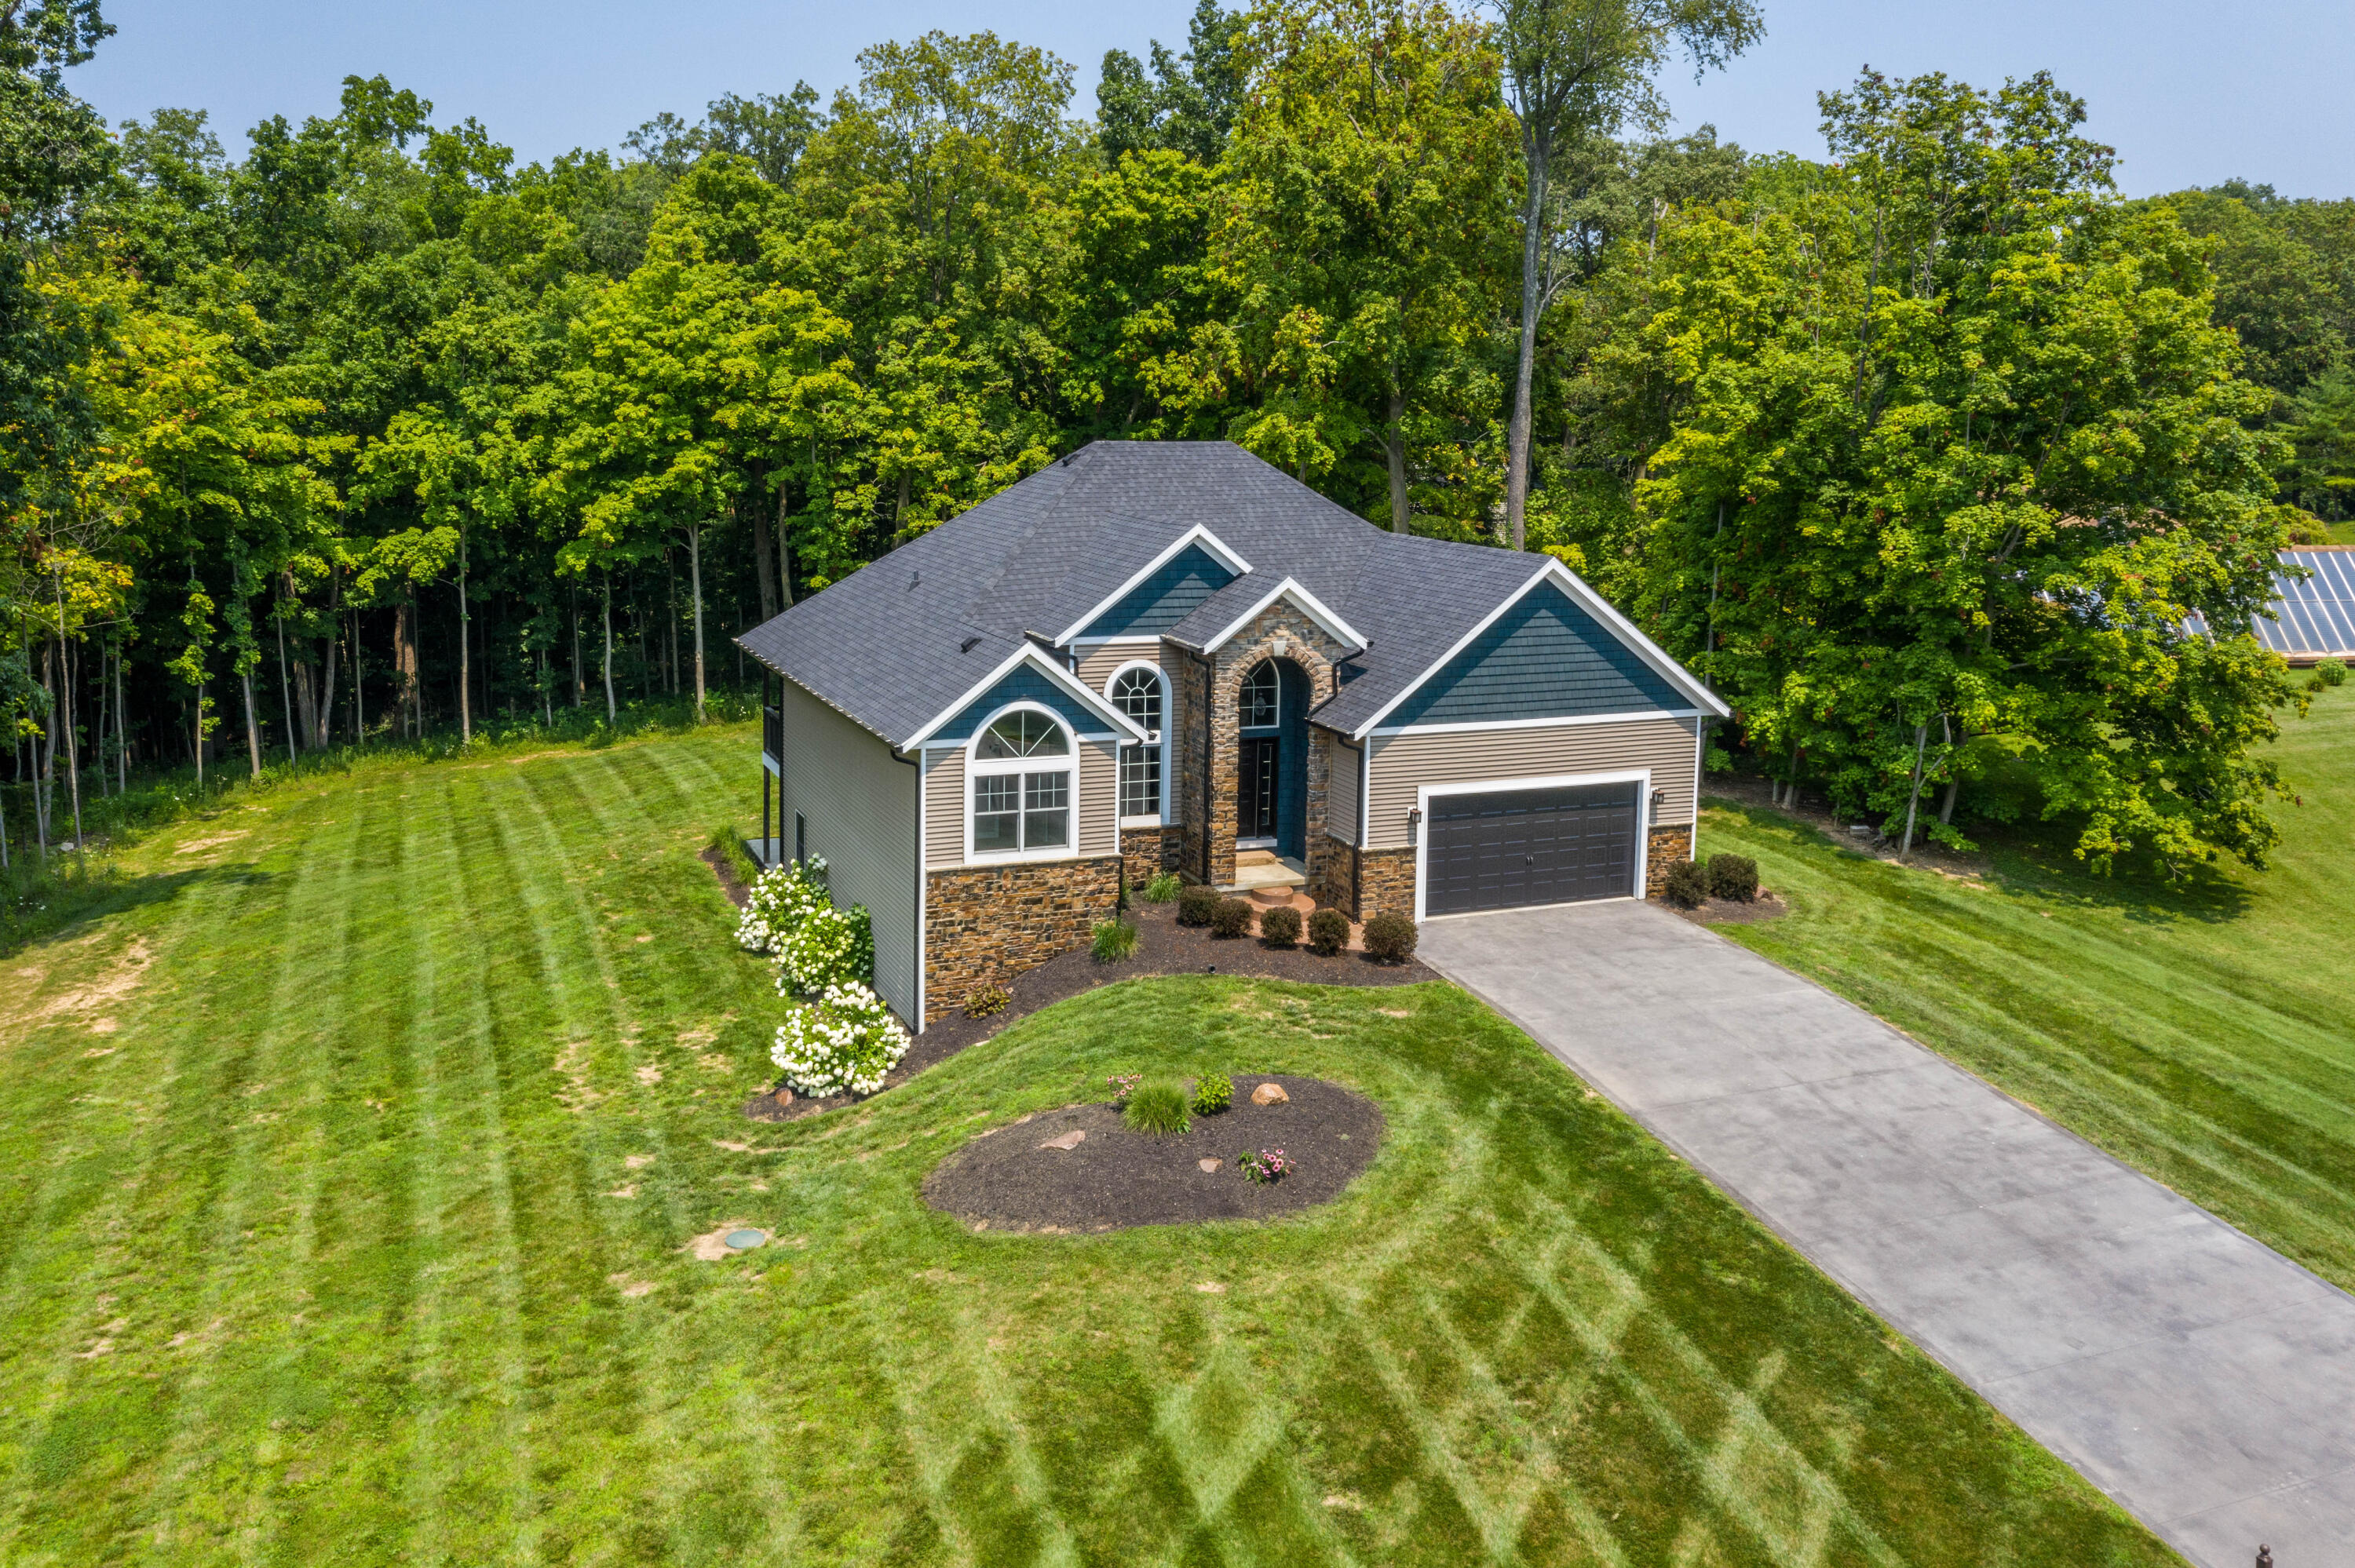 Photo 1 for 946 Timber Trail Dr Urbana, OH 43078